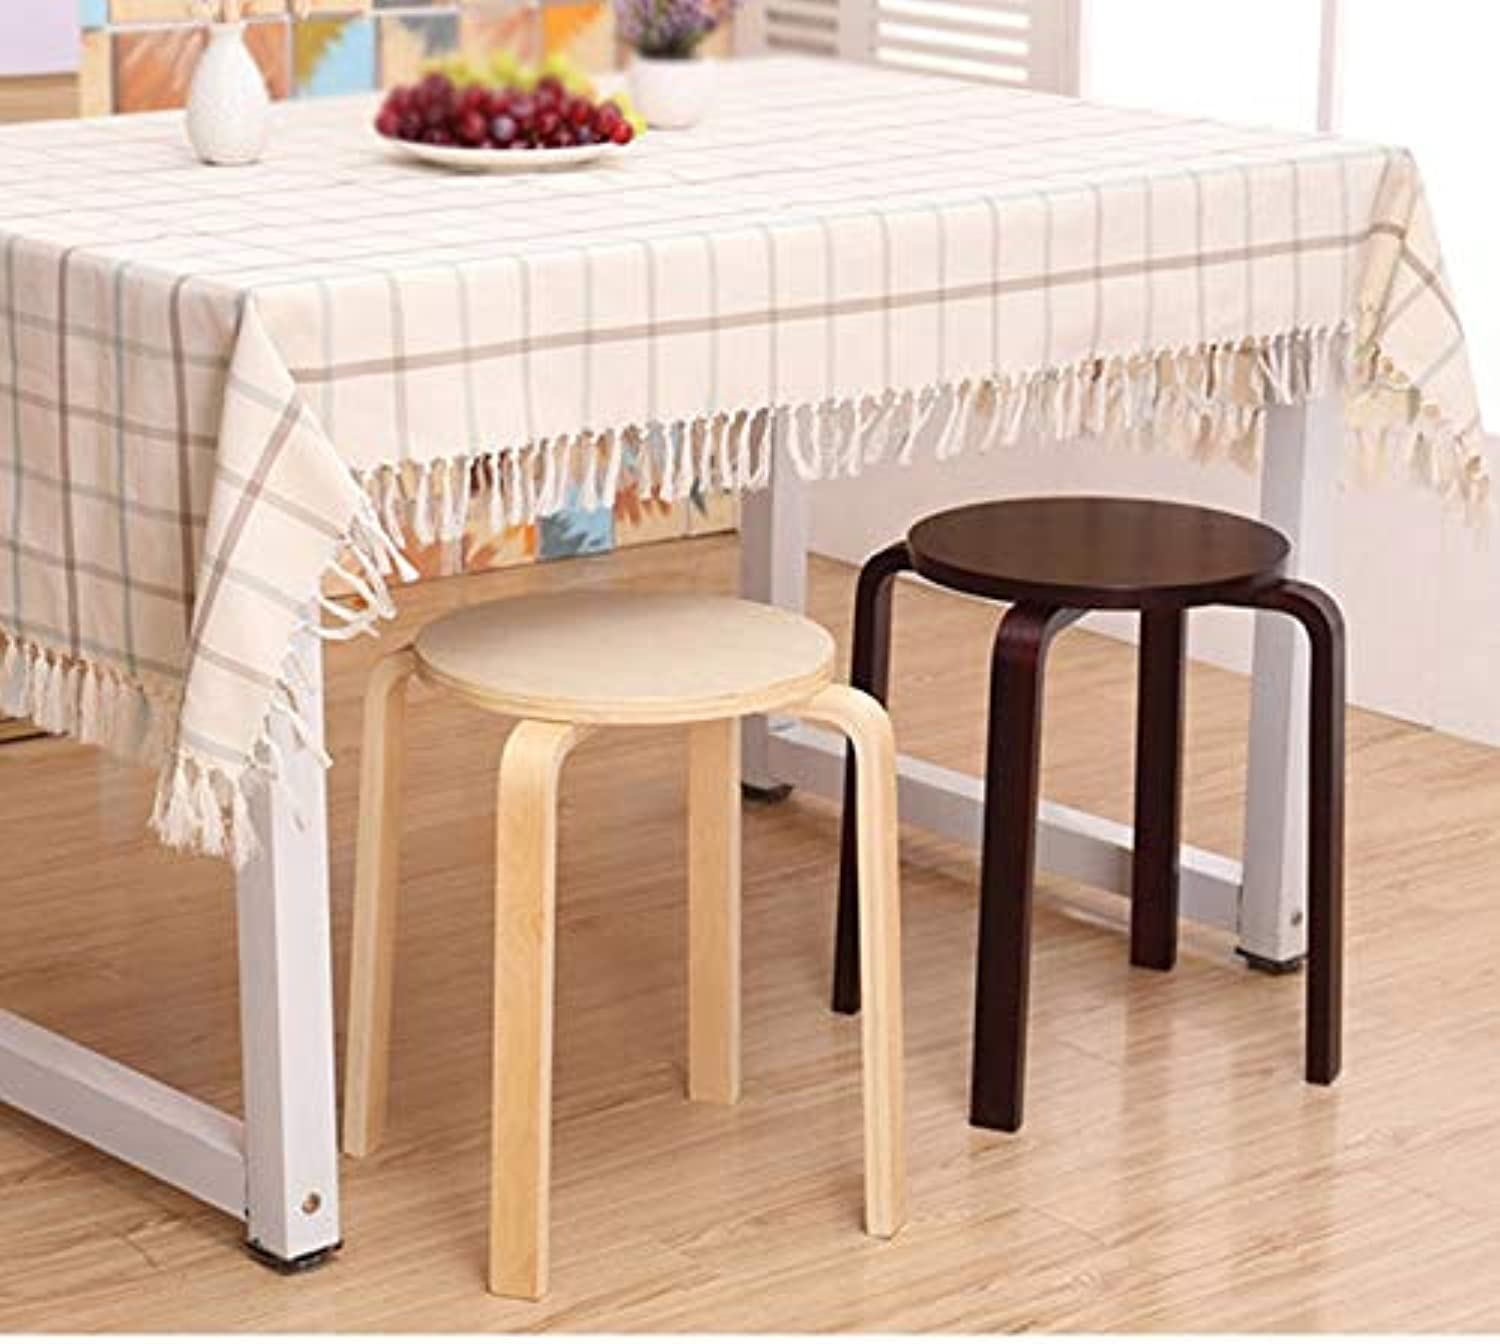 Stool Home Solid Wood Stool Table Stool Small Bench Chair Non-Plastic Dining Chair Black Simple Single Stool Round Wooden Bench (color   Wood color)